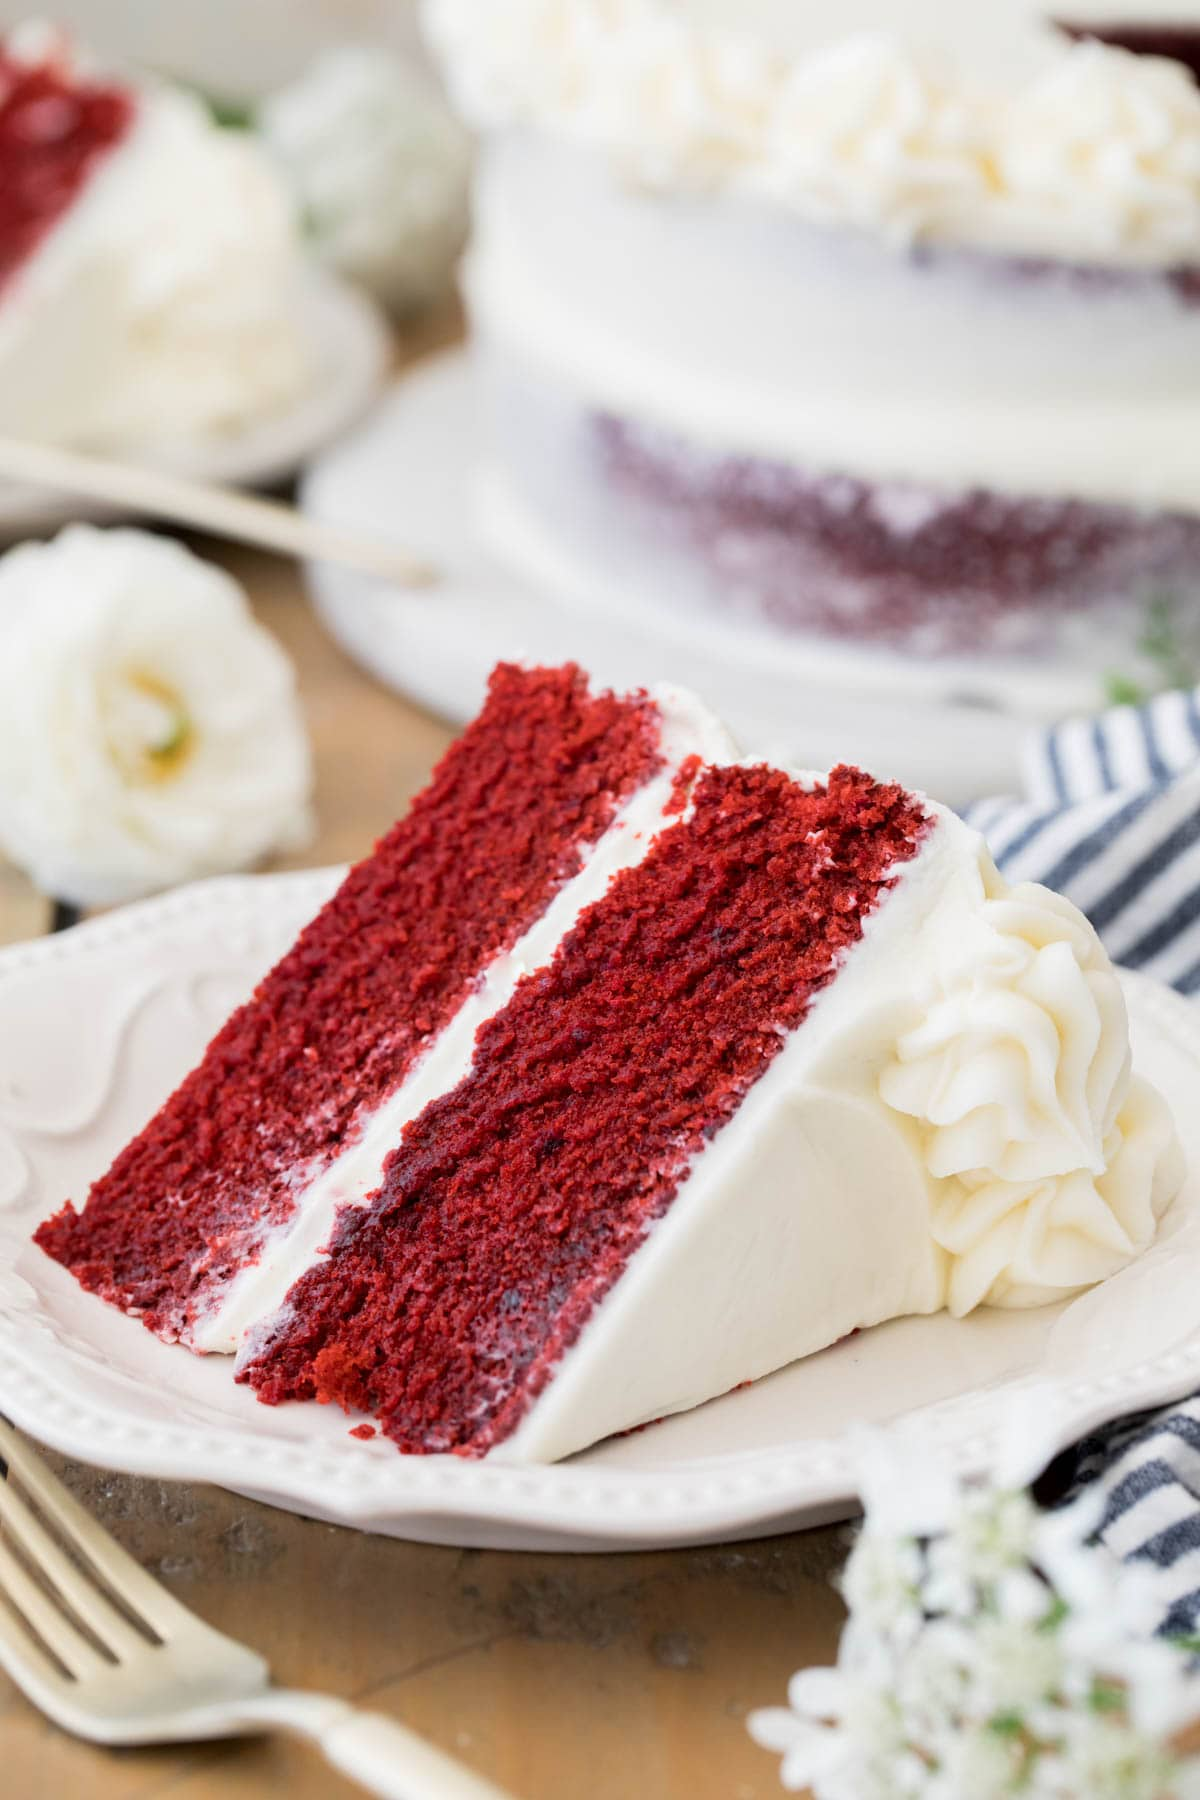 slice of red velvet cake on plate